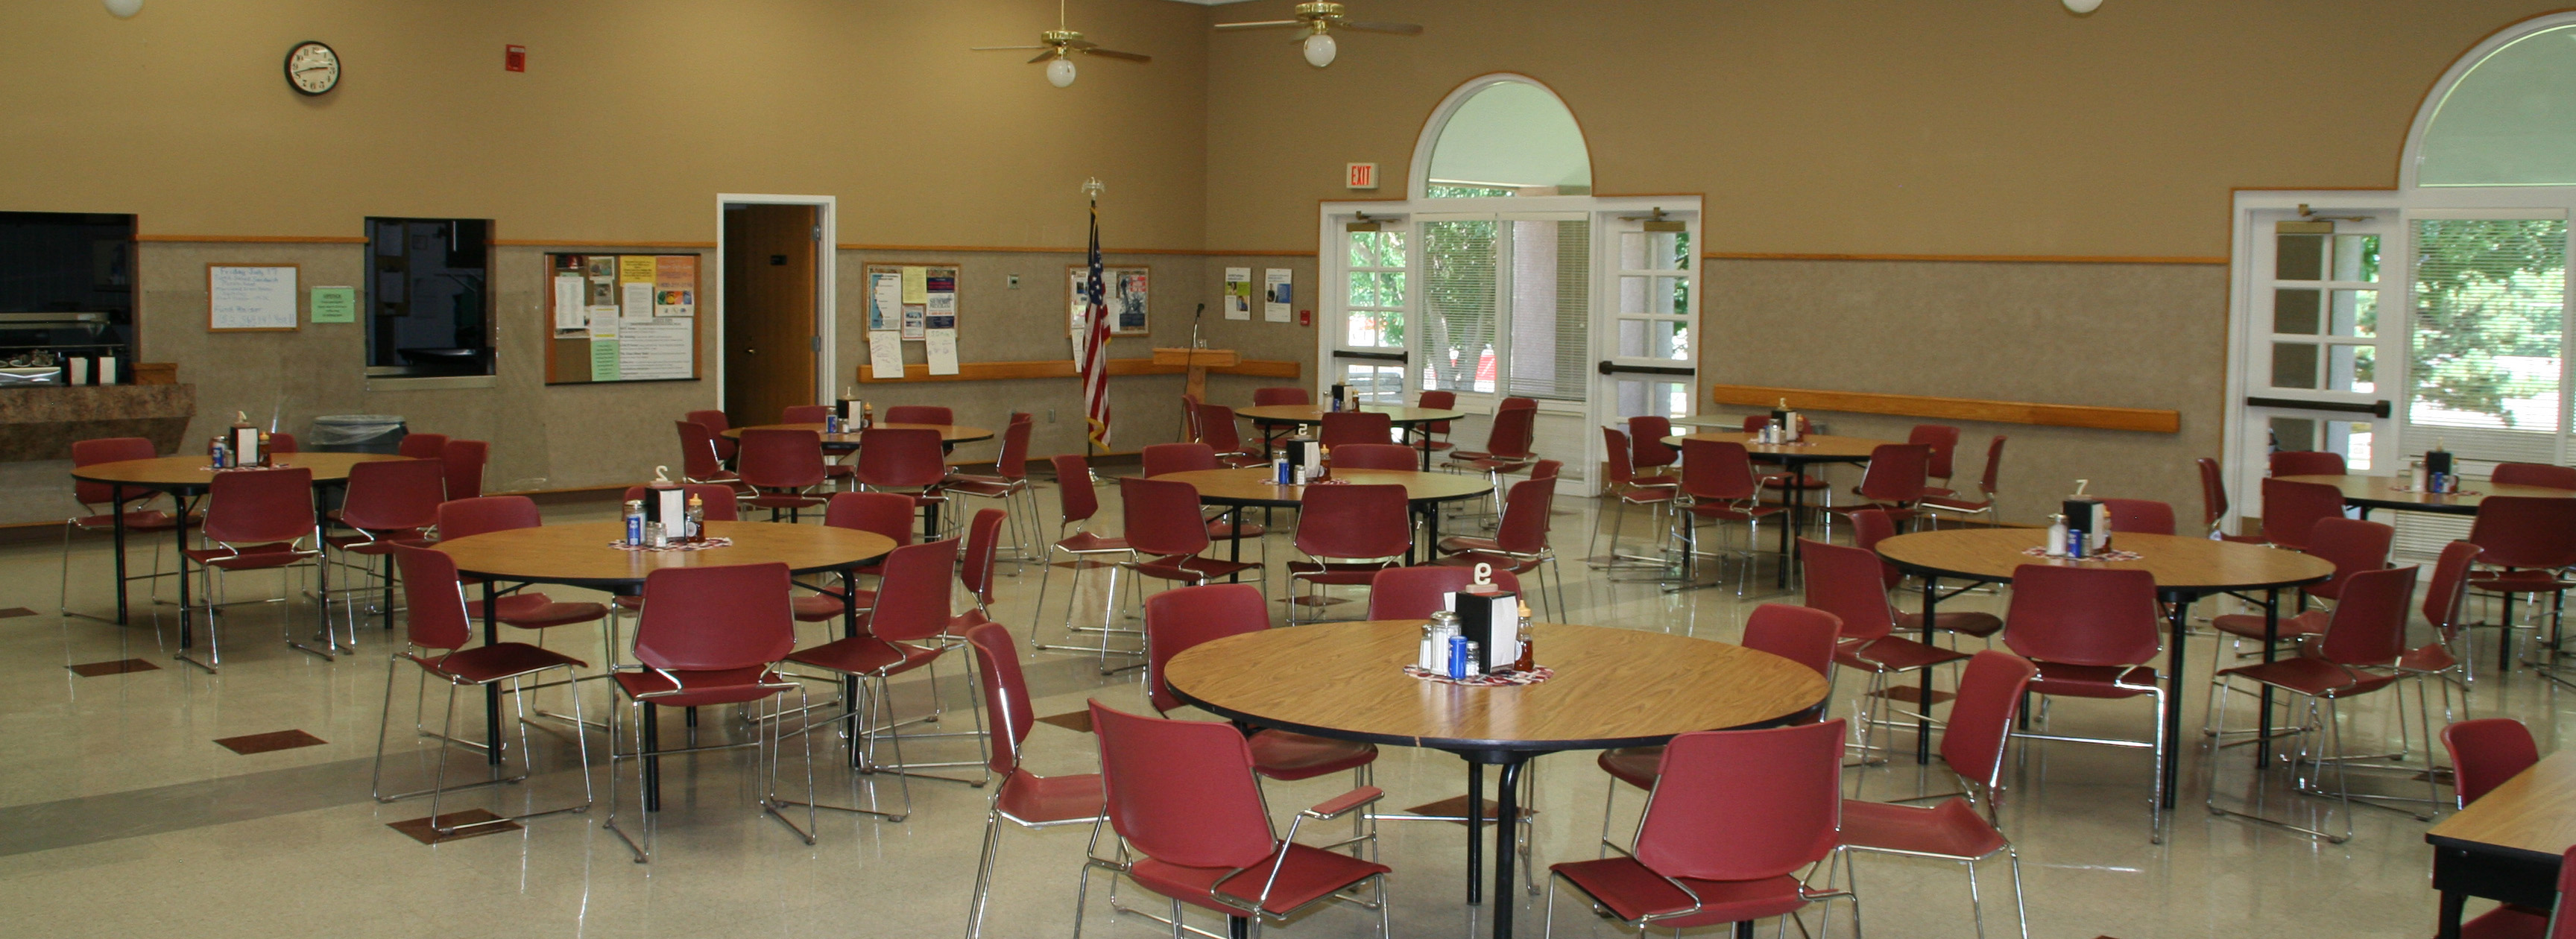 cafeteria at the Pioneer Center